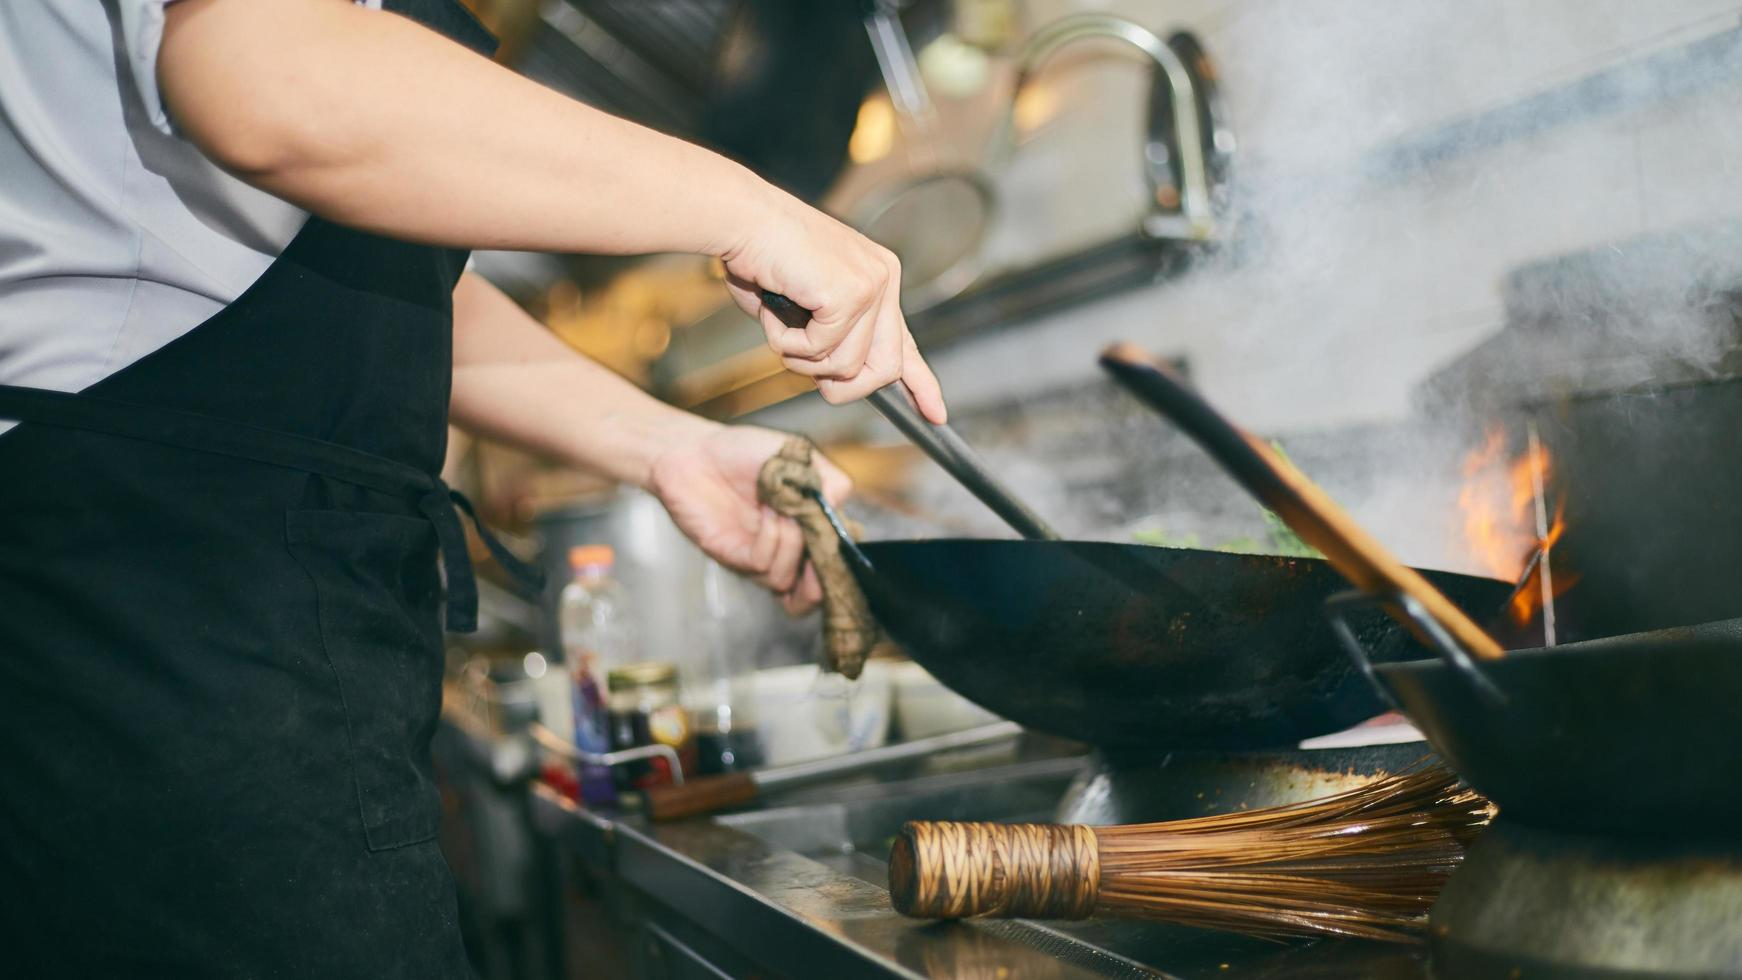 Cook working with wok photo